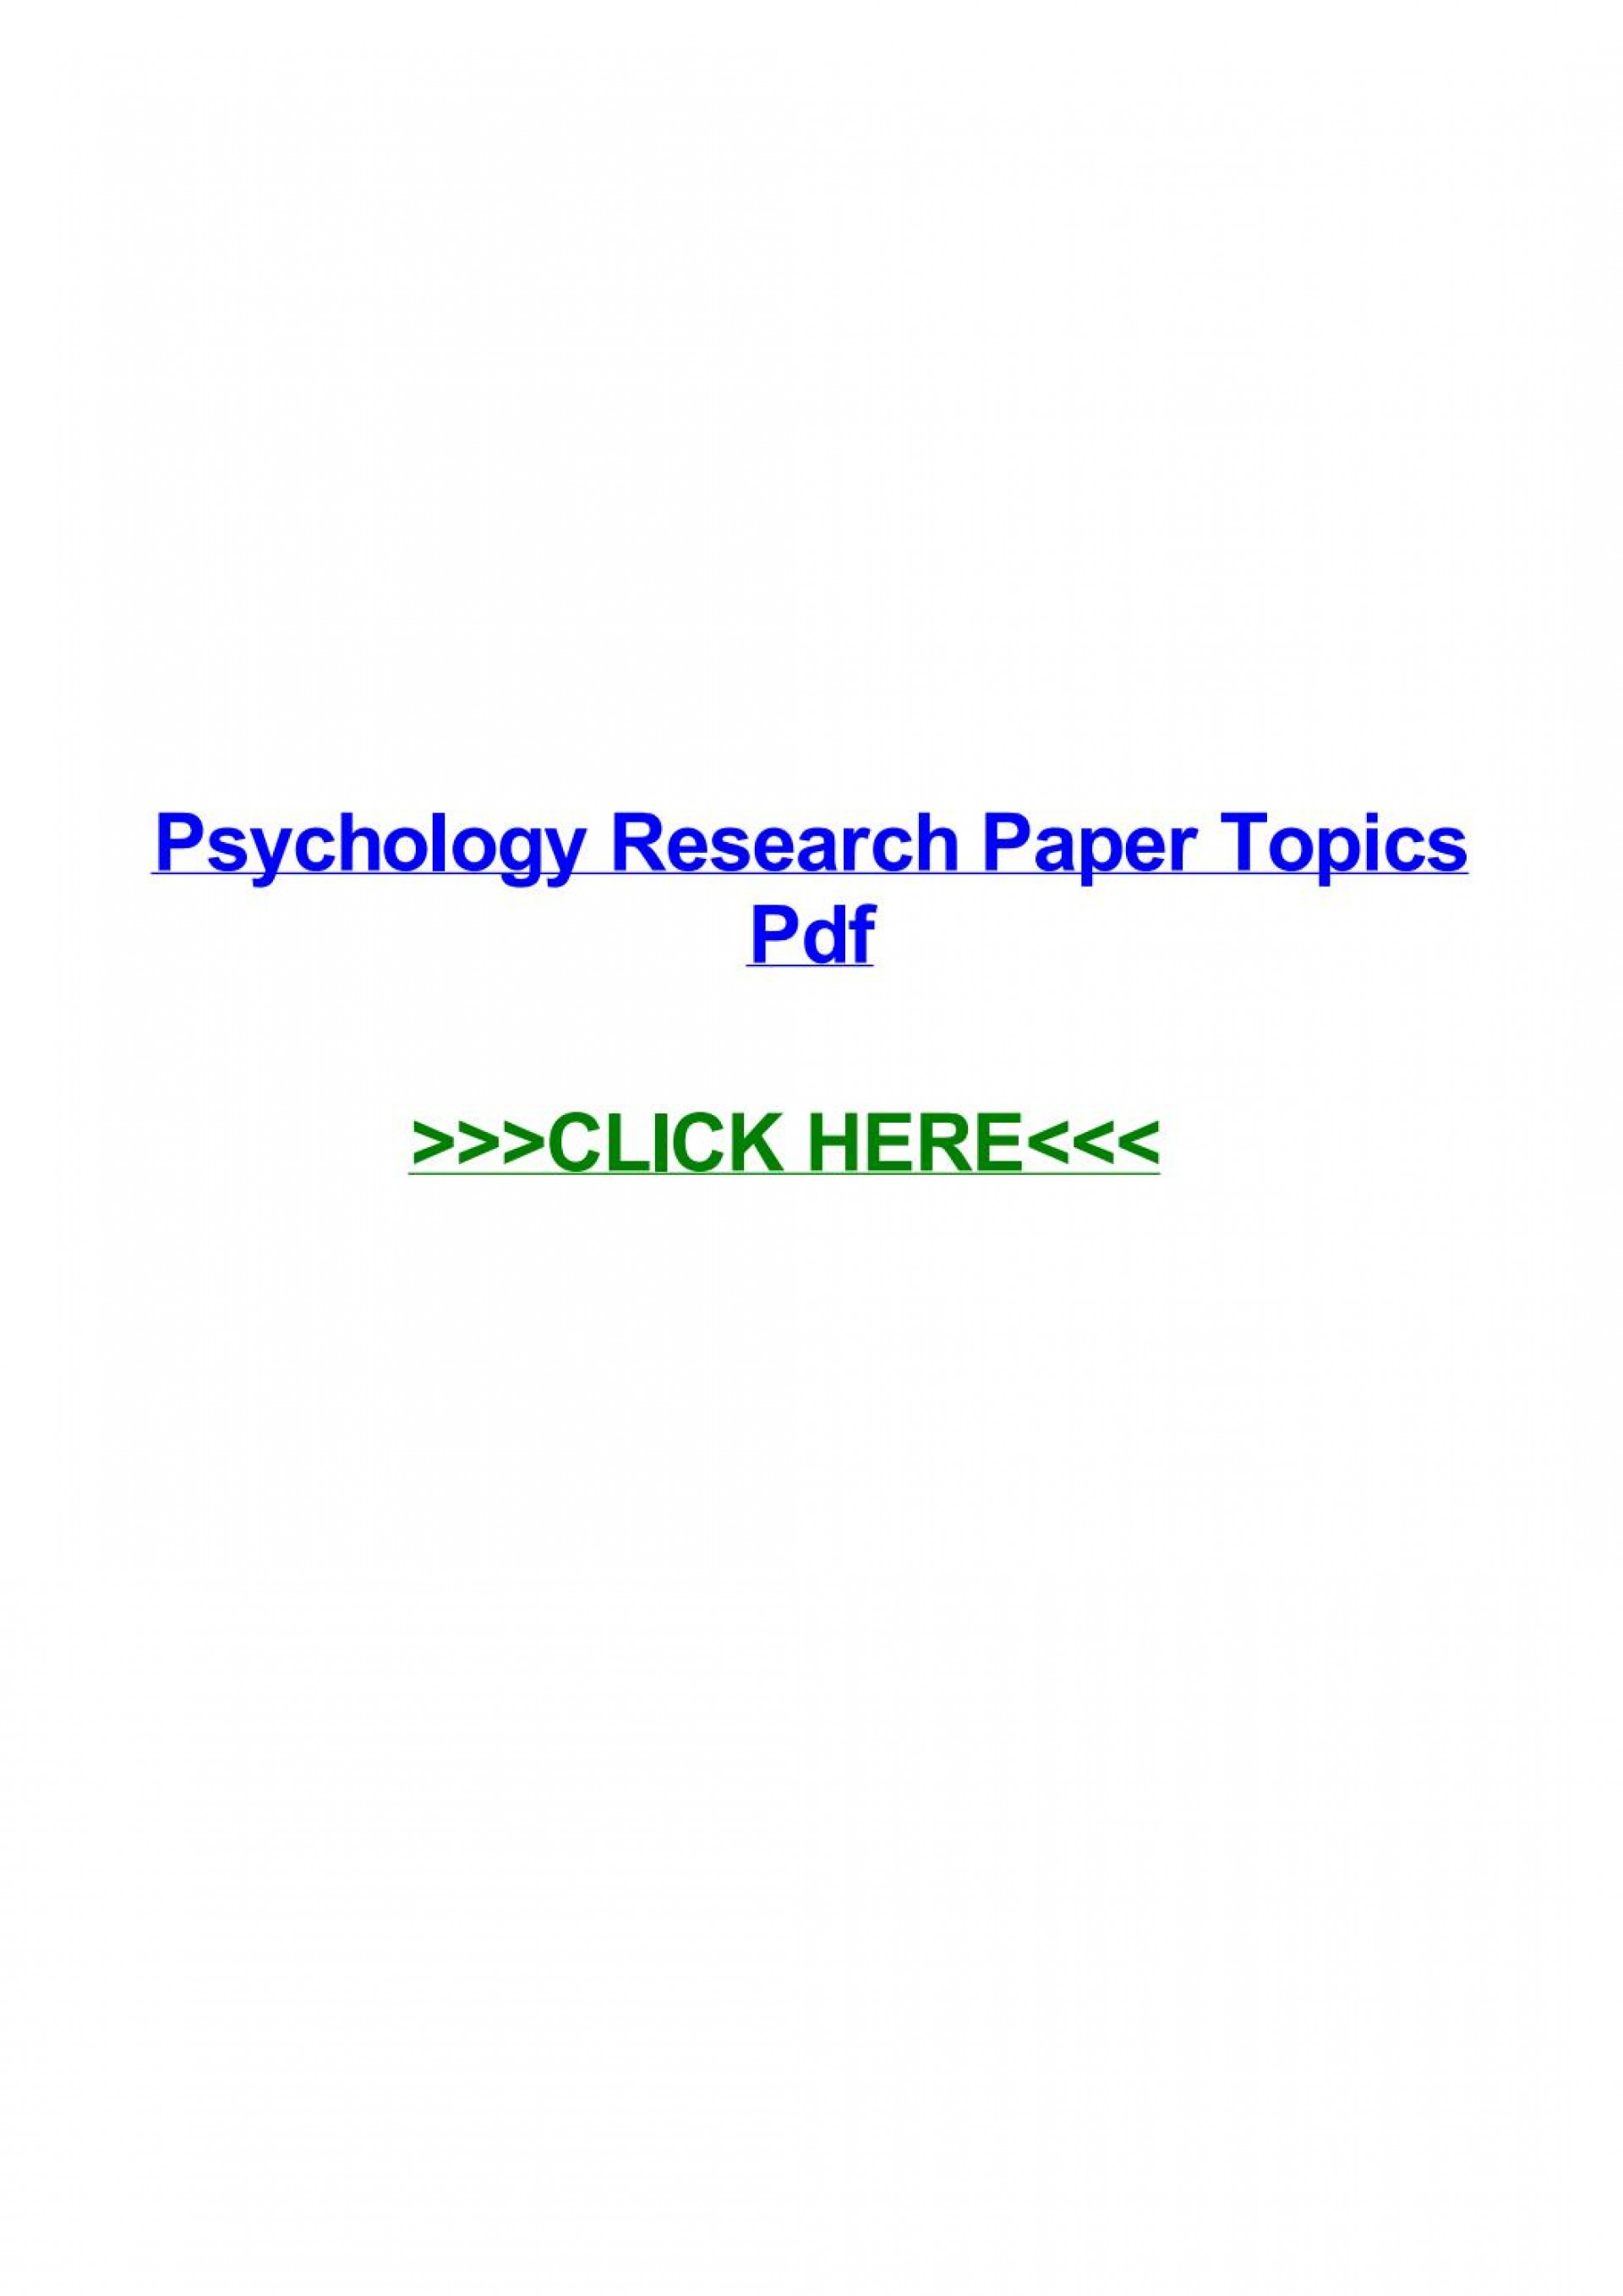 017 Page 1 Research Paper Psychology Striking Topics On Dreams Depression For High School Students 1920